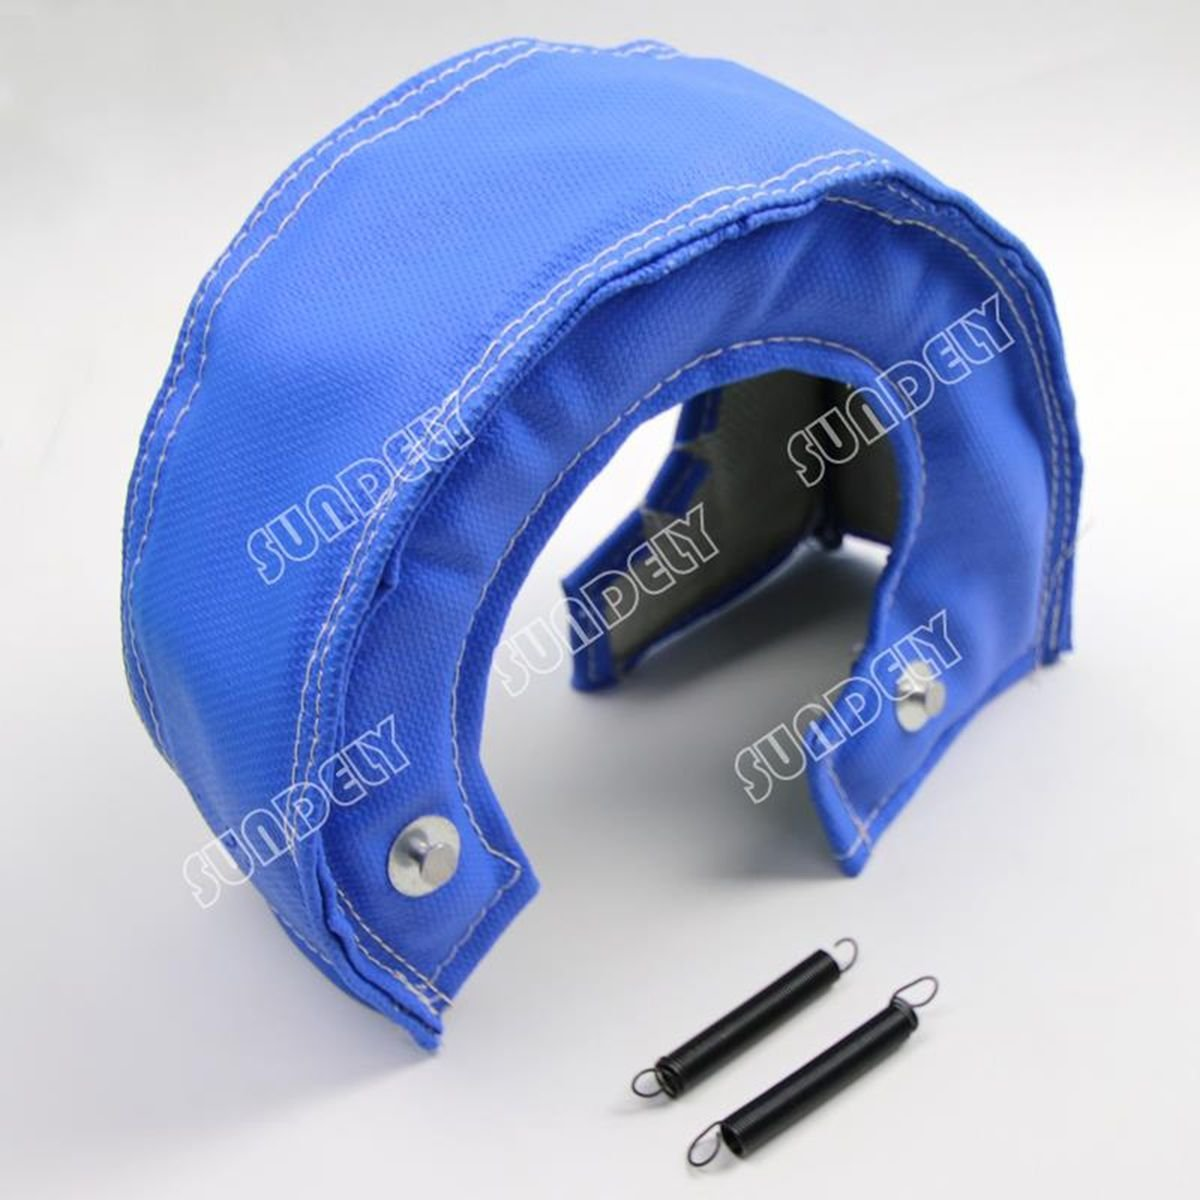 SUNDELY® BLUE RACING TURBOCHARGER T4 TURBO HEAT SHIELD FIBER BLANKET